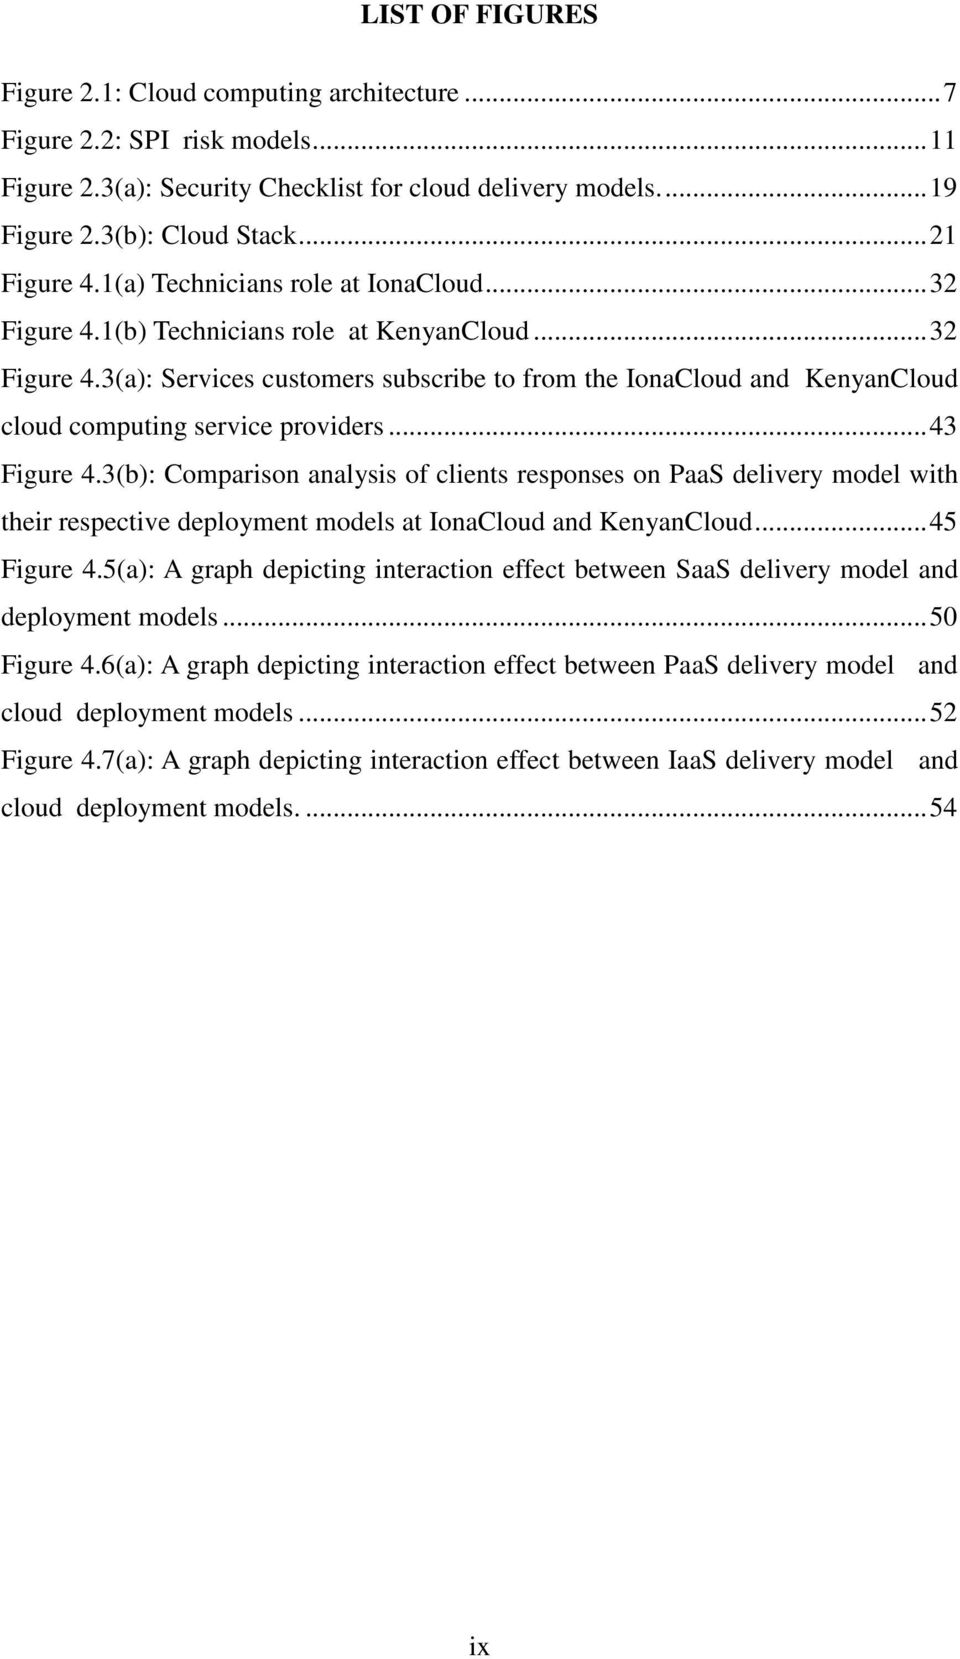 ..43 Figure 4.3(b): Comparison analysis of clients responses on PaaS delivery model with their respective deployment models at IonaCloud and KenyanCloud...45 Figure 4.